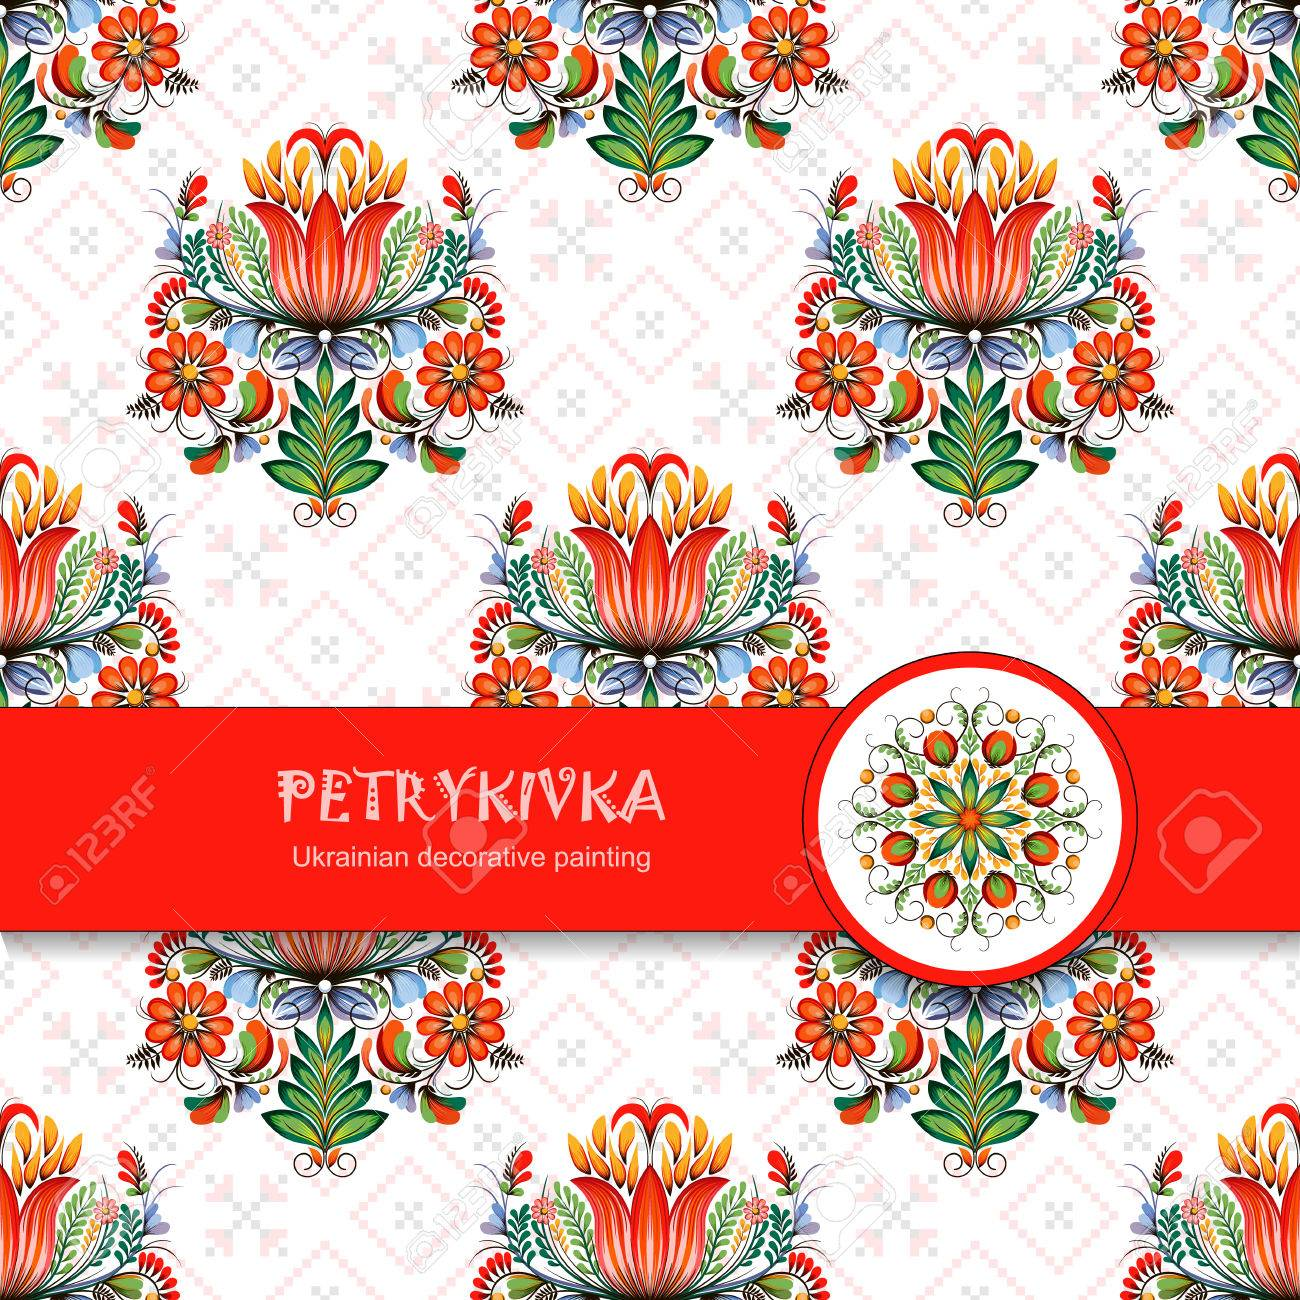 Vector Card With Floral Symmetrical Elements Style Of Petrykivka